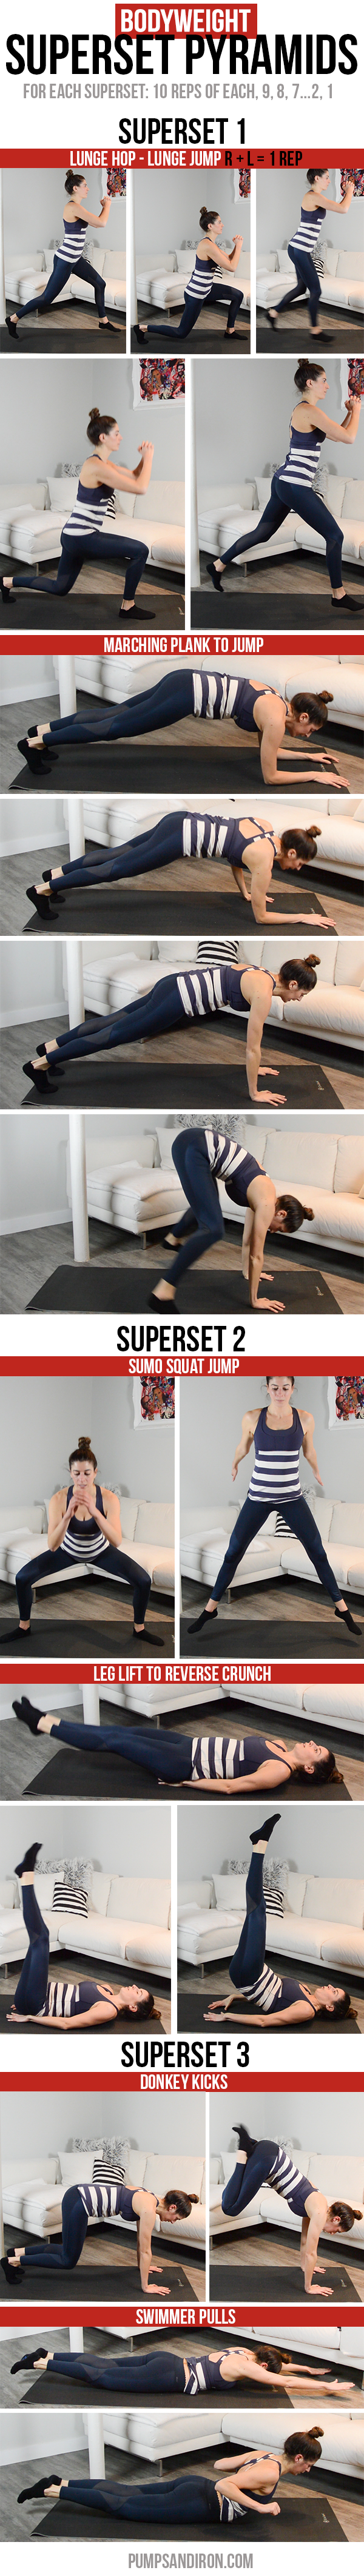 Superset Pyramids Workout - all bodyweight exercises, no equipment needed